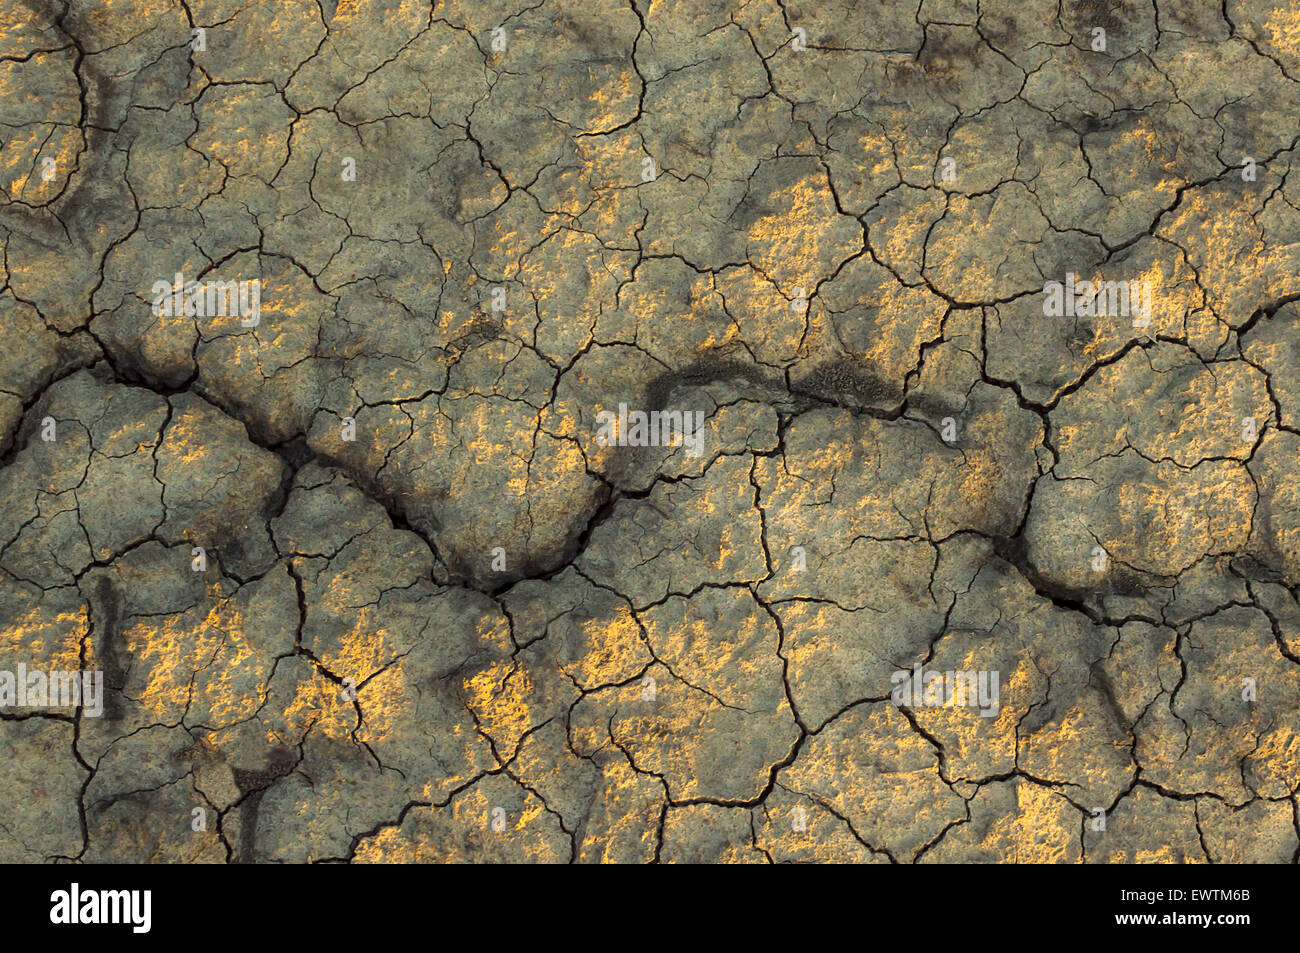 Dry soil texture on the ground. Selective focus. - Stock Image